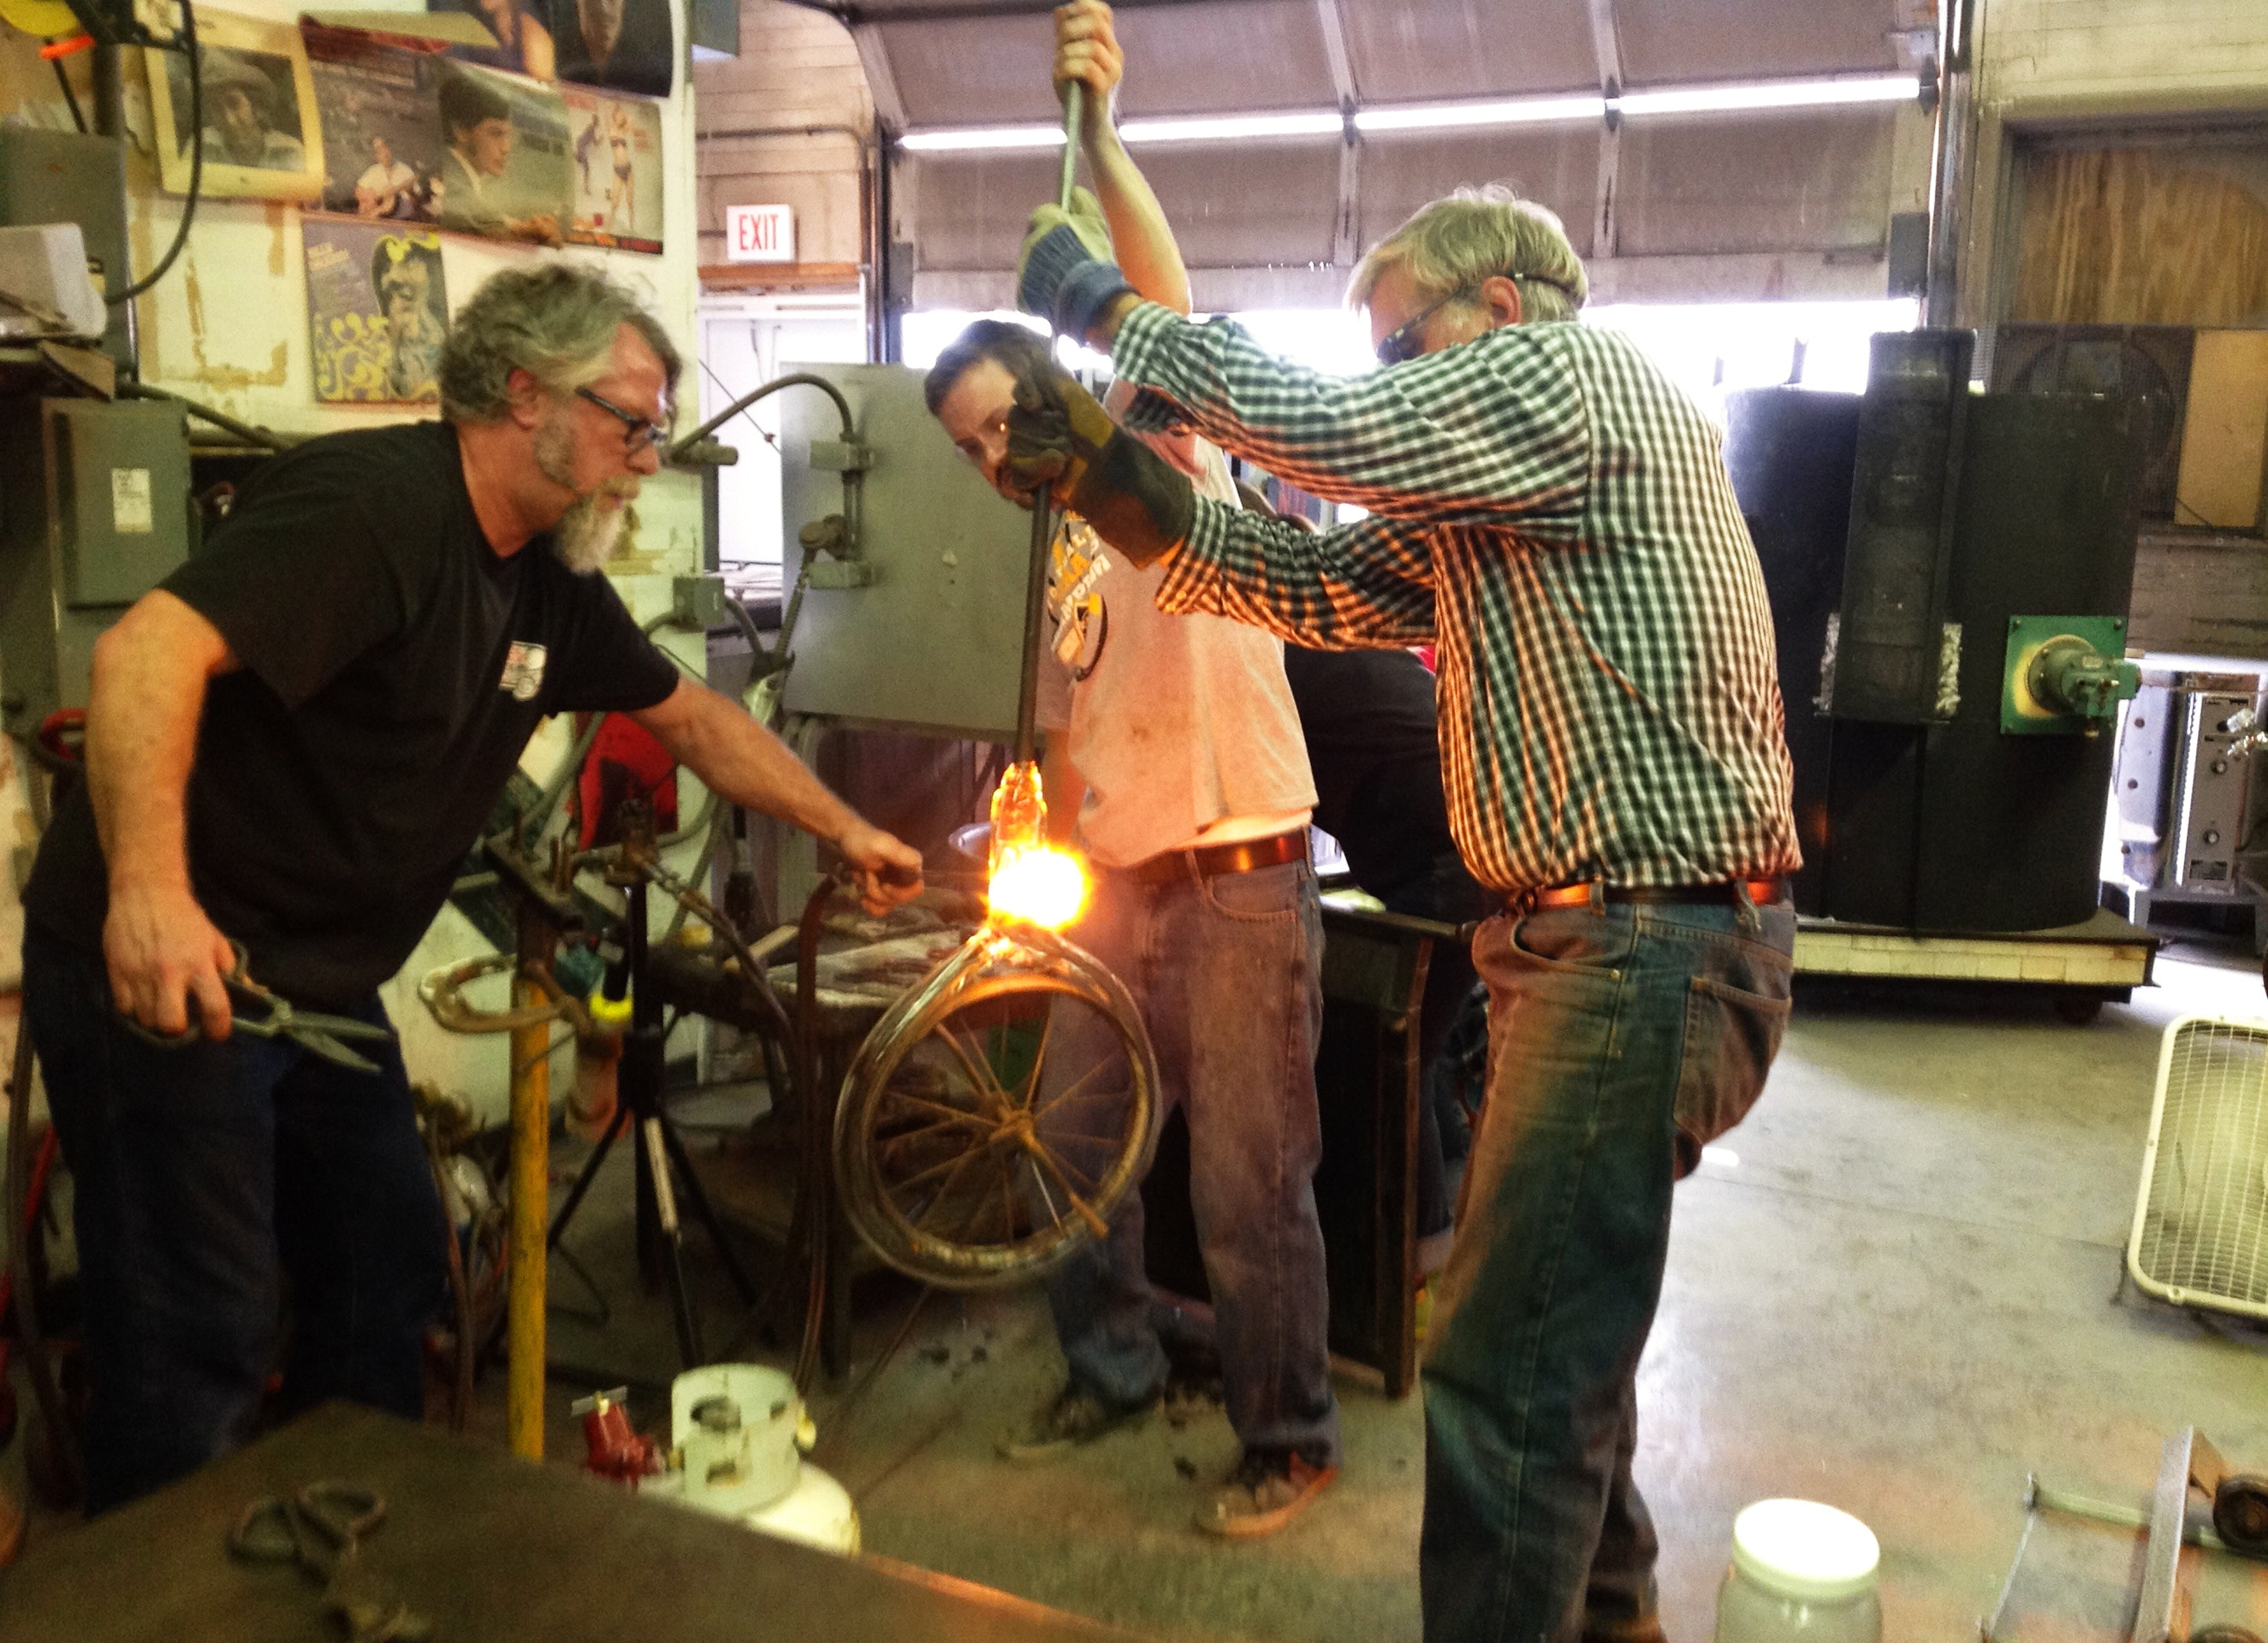 Robert DuGrenier working on a glass piece with faculty and students in the glass house.